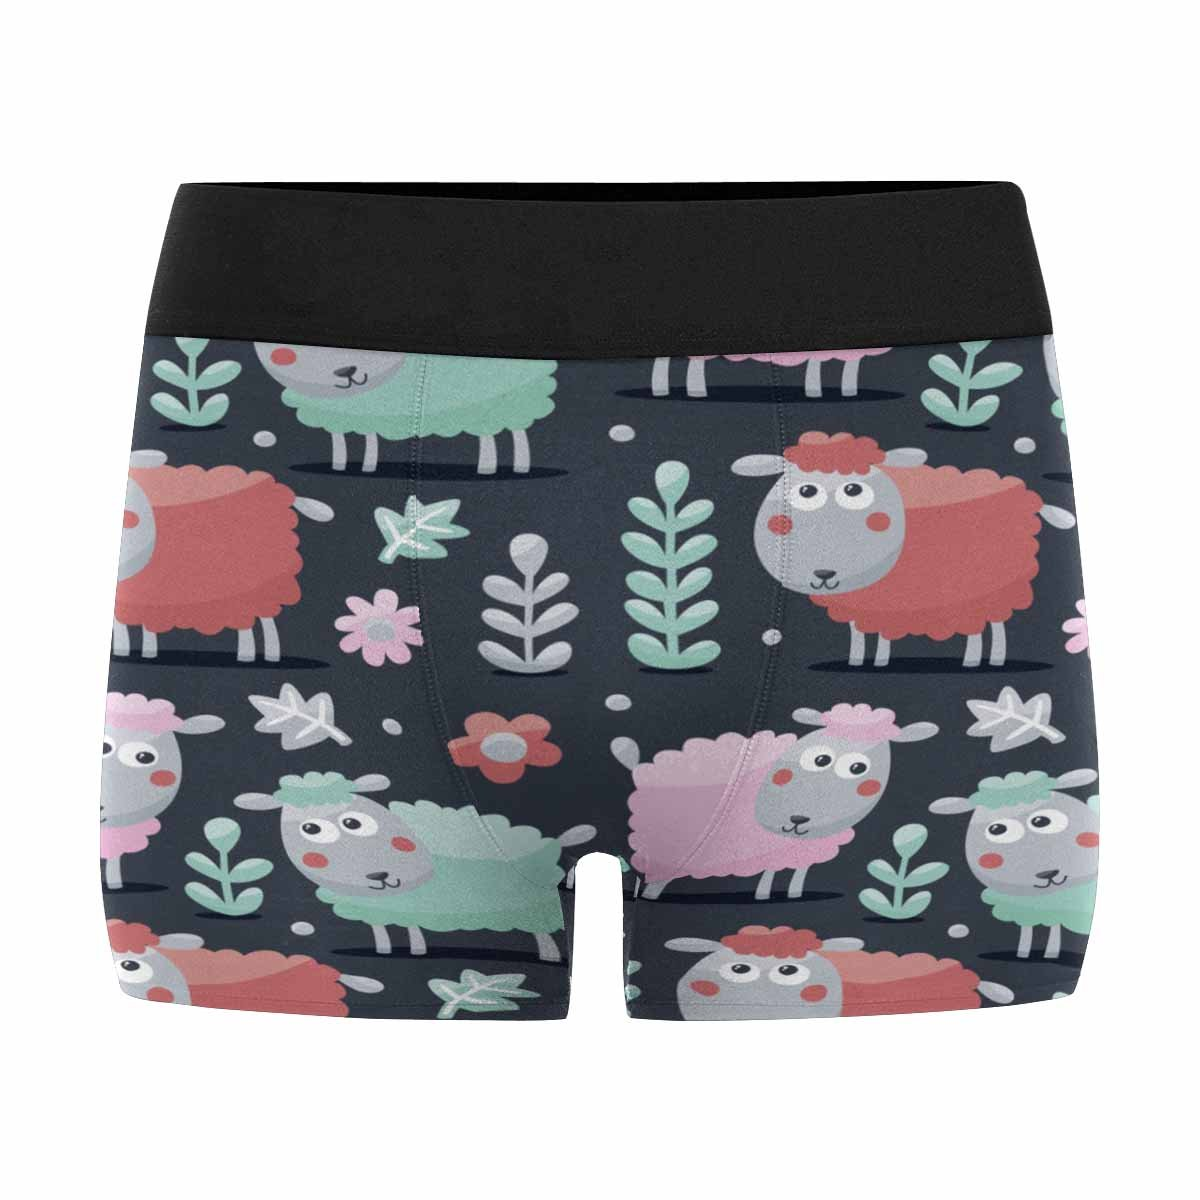 INTERESTPRINT Mens Boxer Briefs Underwear Cute Pattern Made with Sheep XS-3XL Animals Plants and Bulbs Flowers